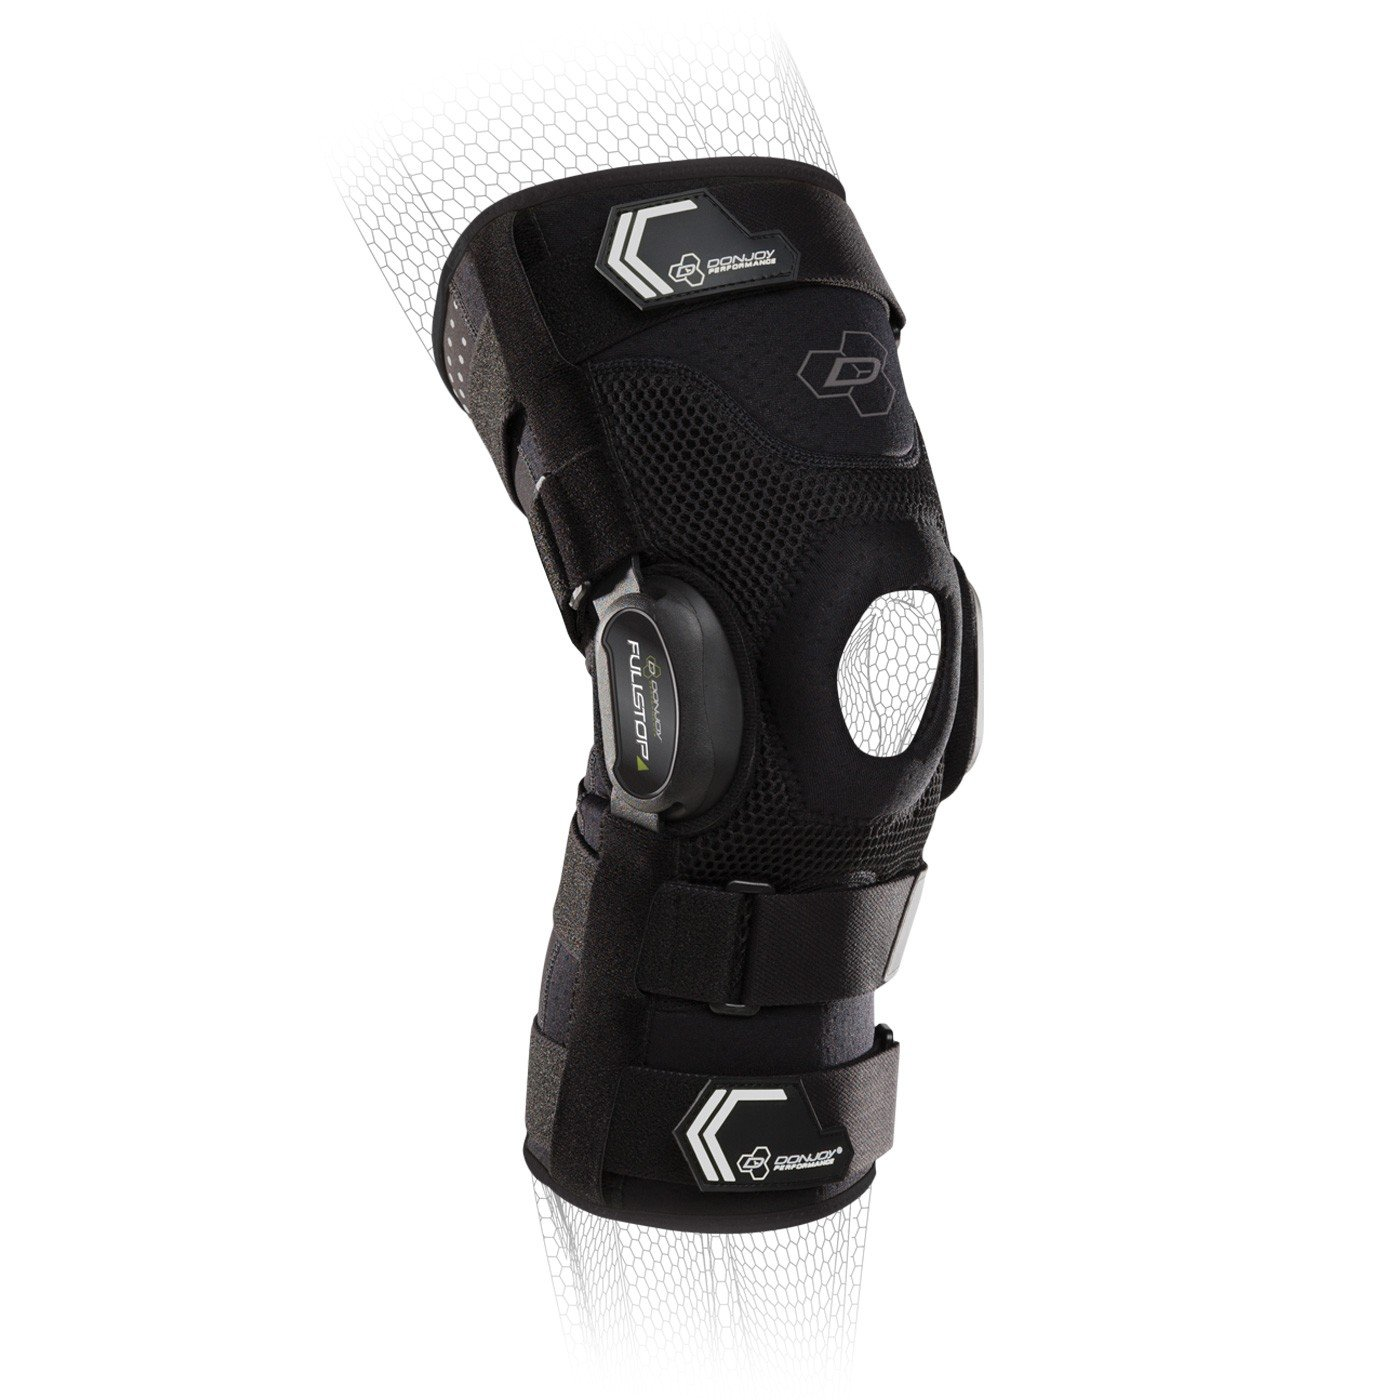 DonJoy Performance Bionic FullStop Knee Brace - Large